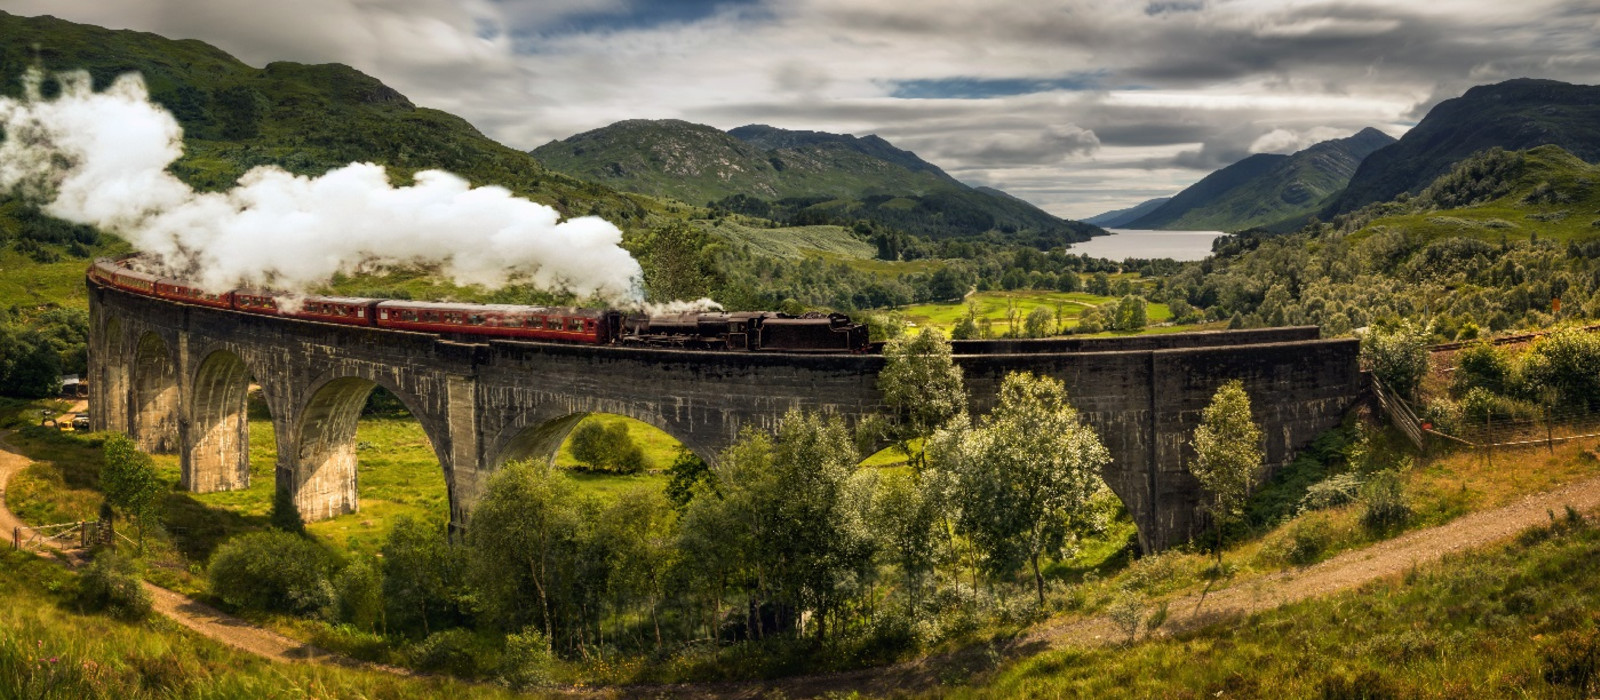 Things to do in UK & Ireland - Jacobite steam train ride